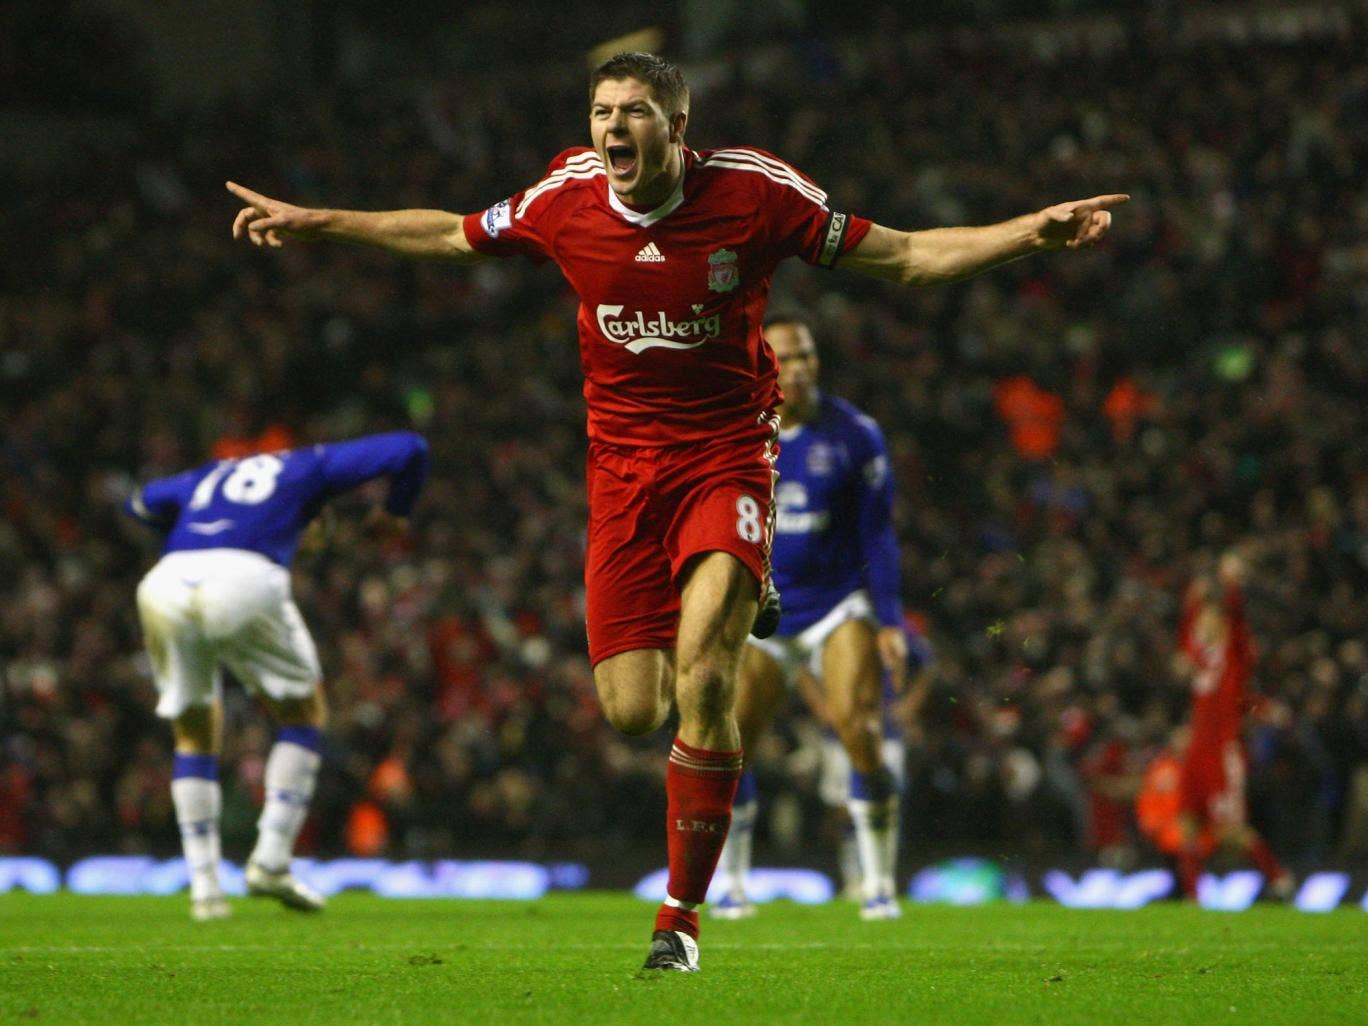 Liverpool captain Steven Gerrard celebrates opening the scoring in the Merseyside derby at Anfield back in 2009